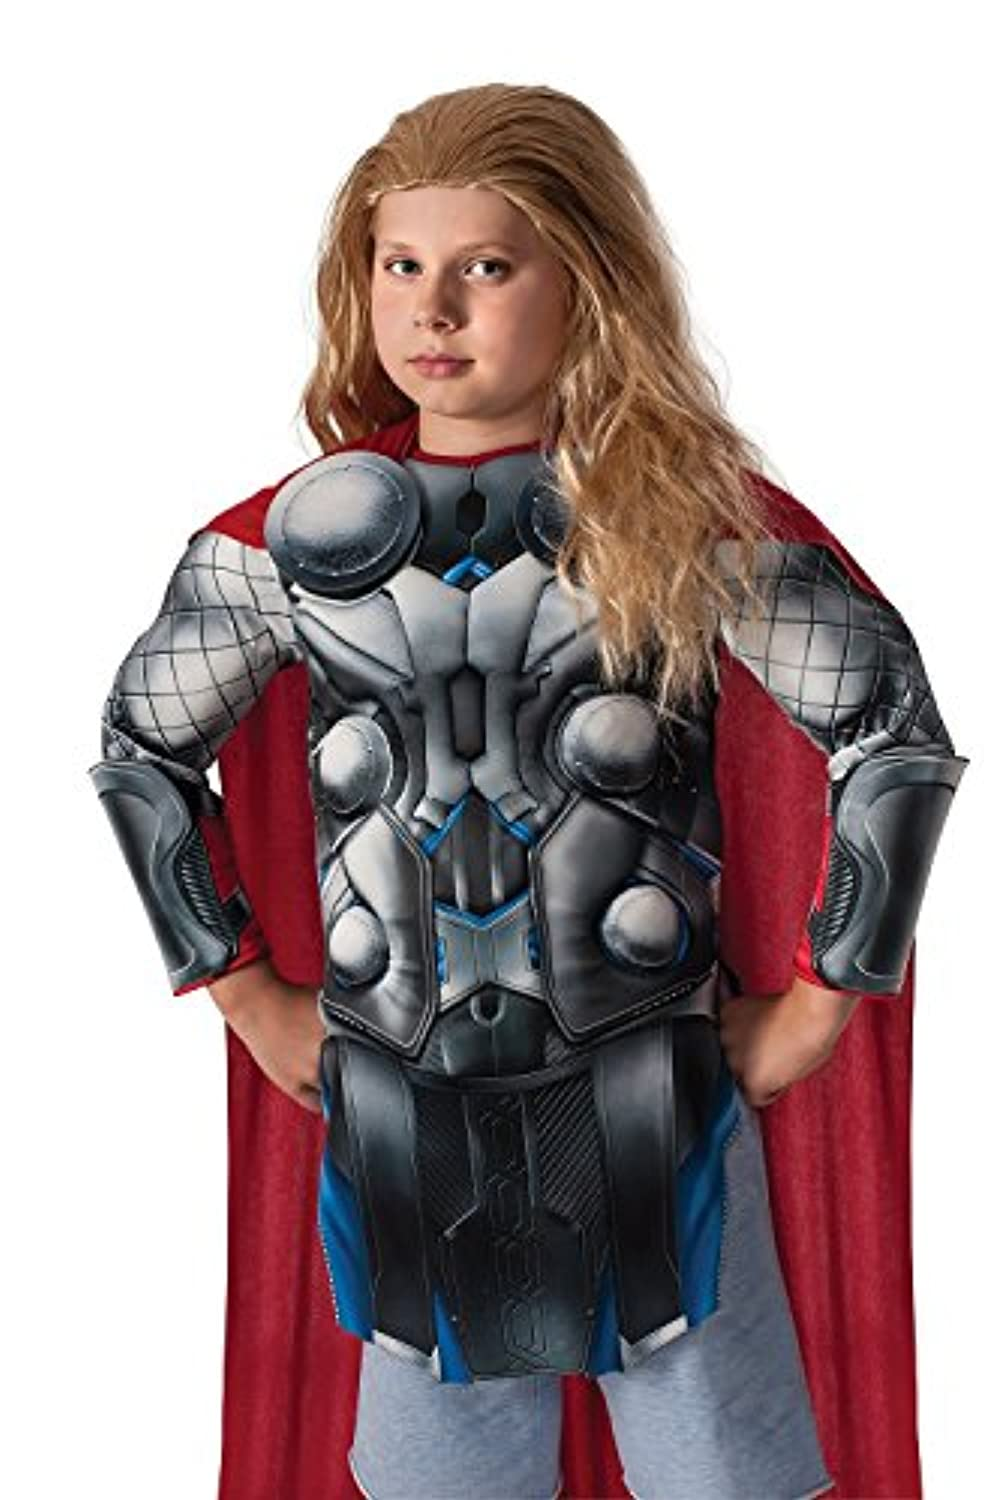 Avengers 2 - Age of Ultron: Thor Wig For Kids [並行輸入品]